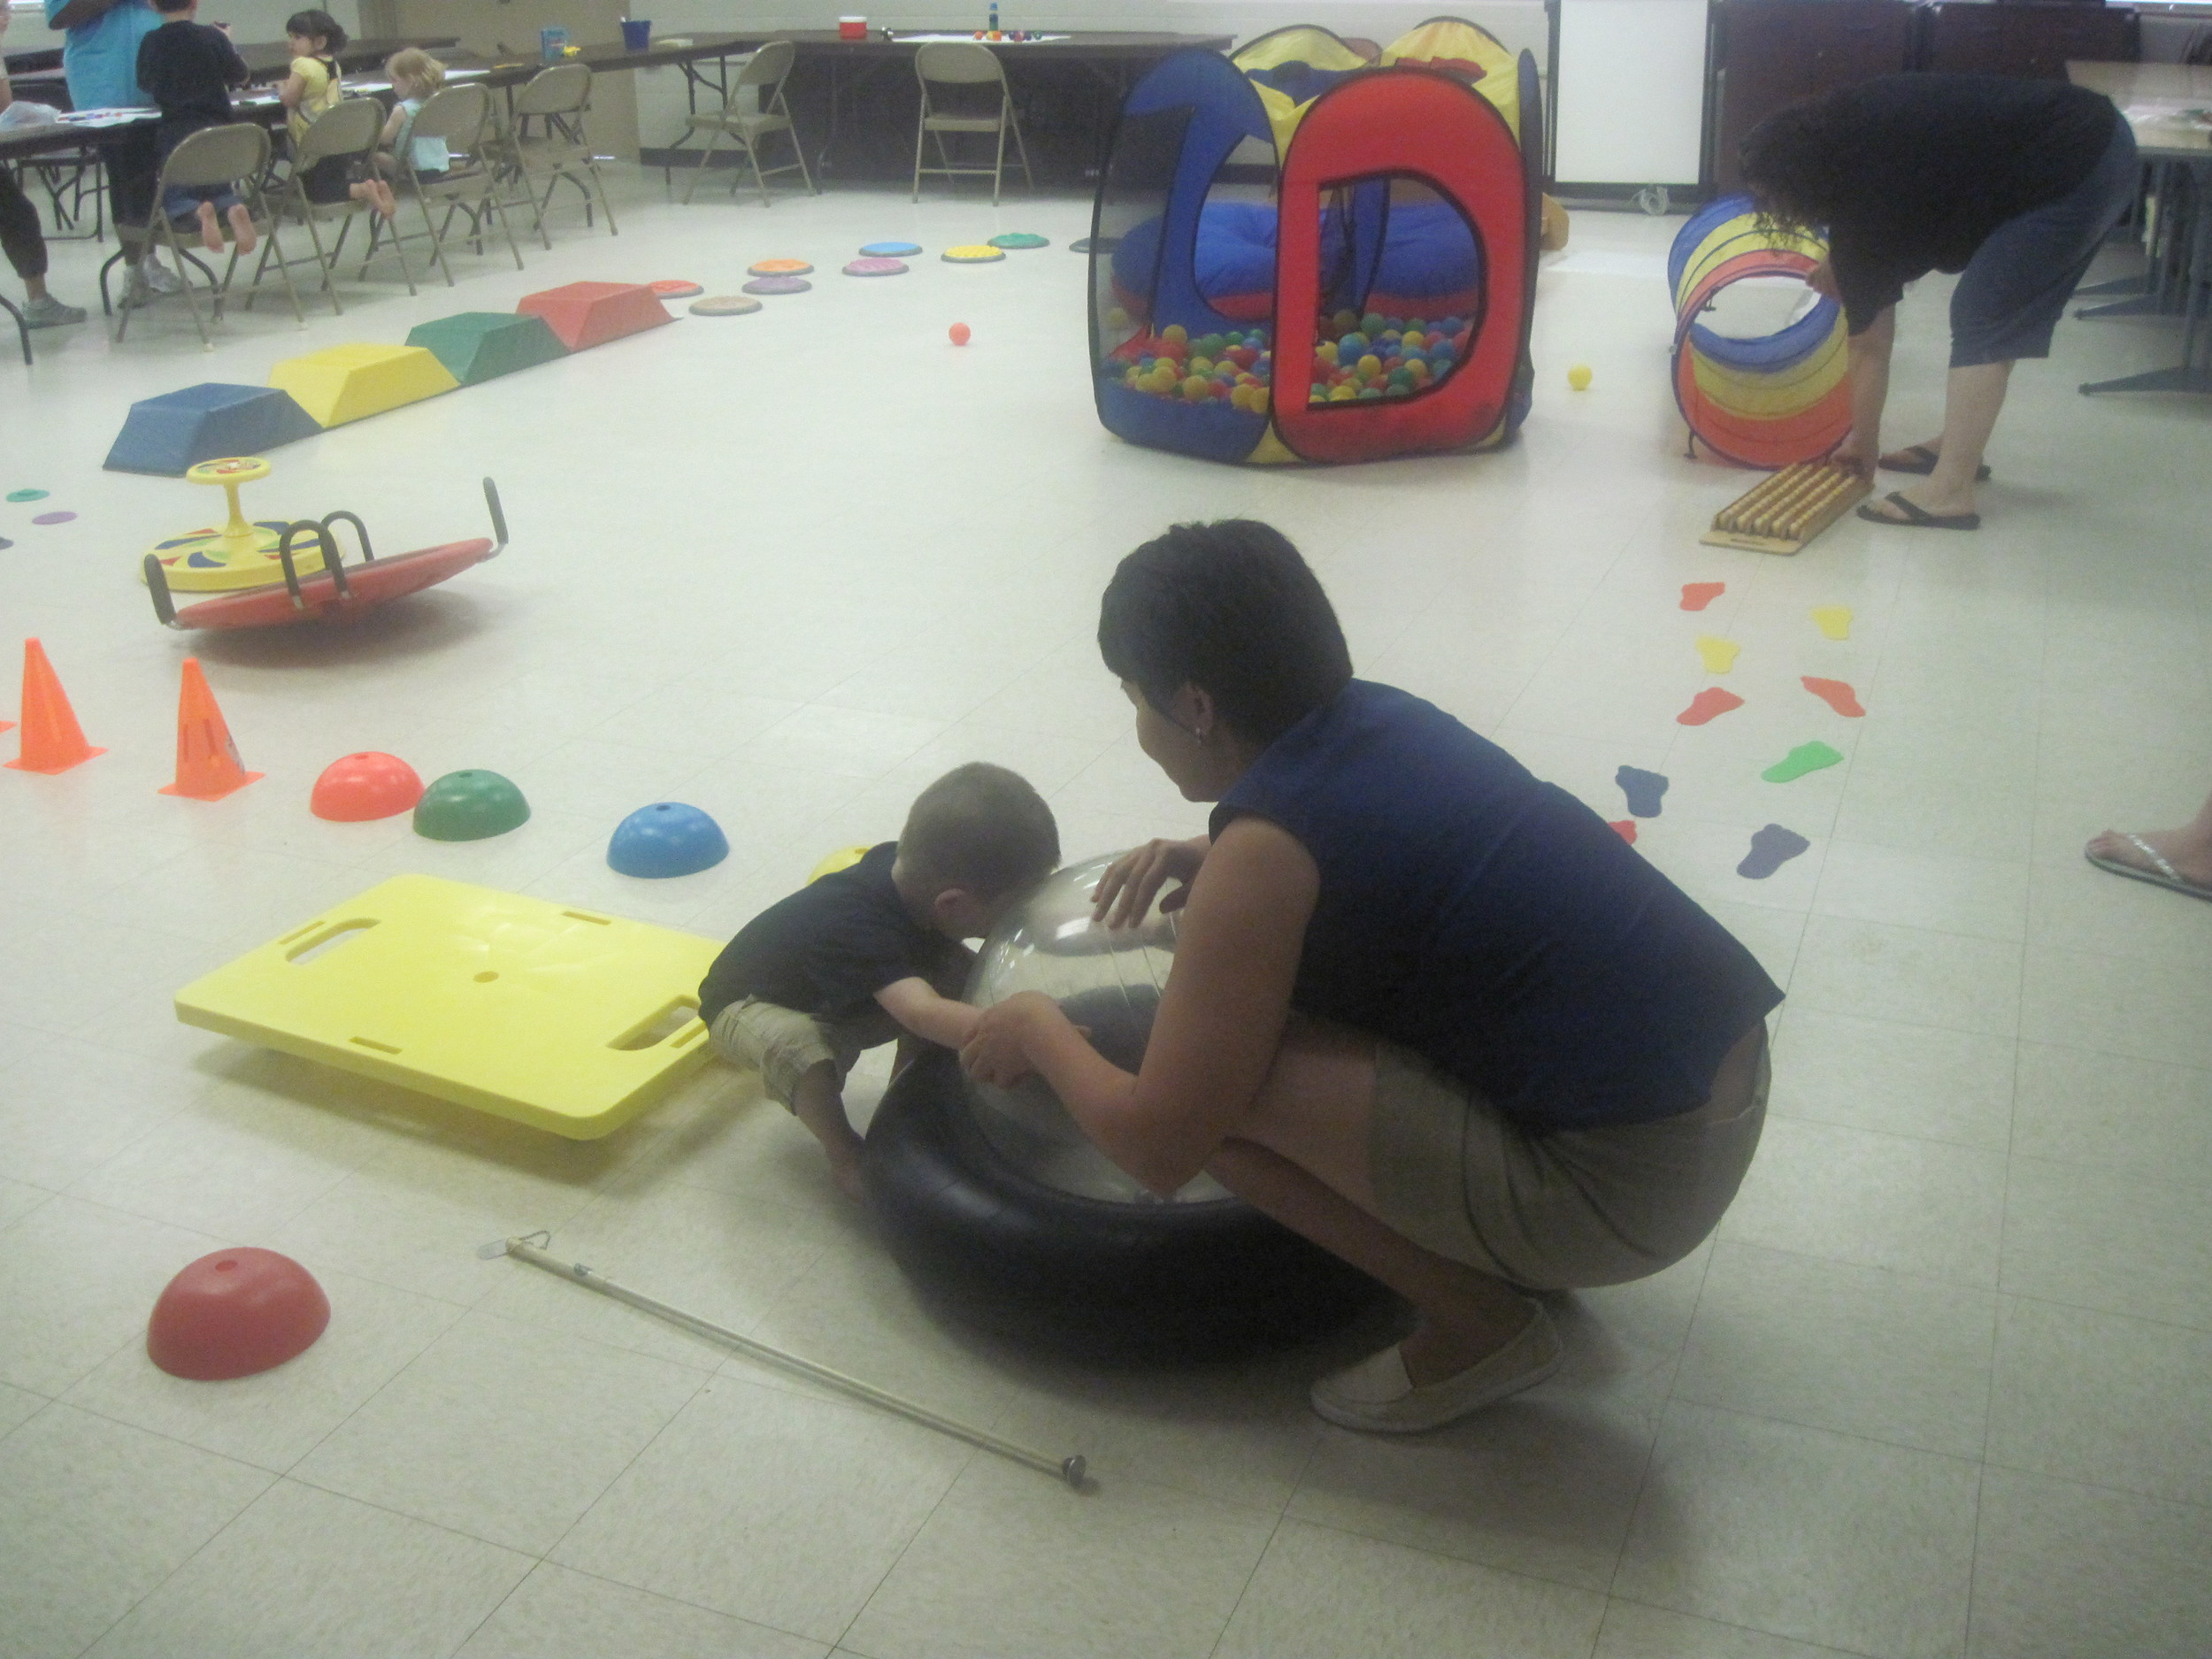 Jordan and Elnora enjoy playing on the tactile obstacle course